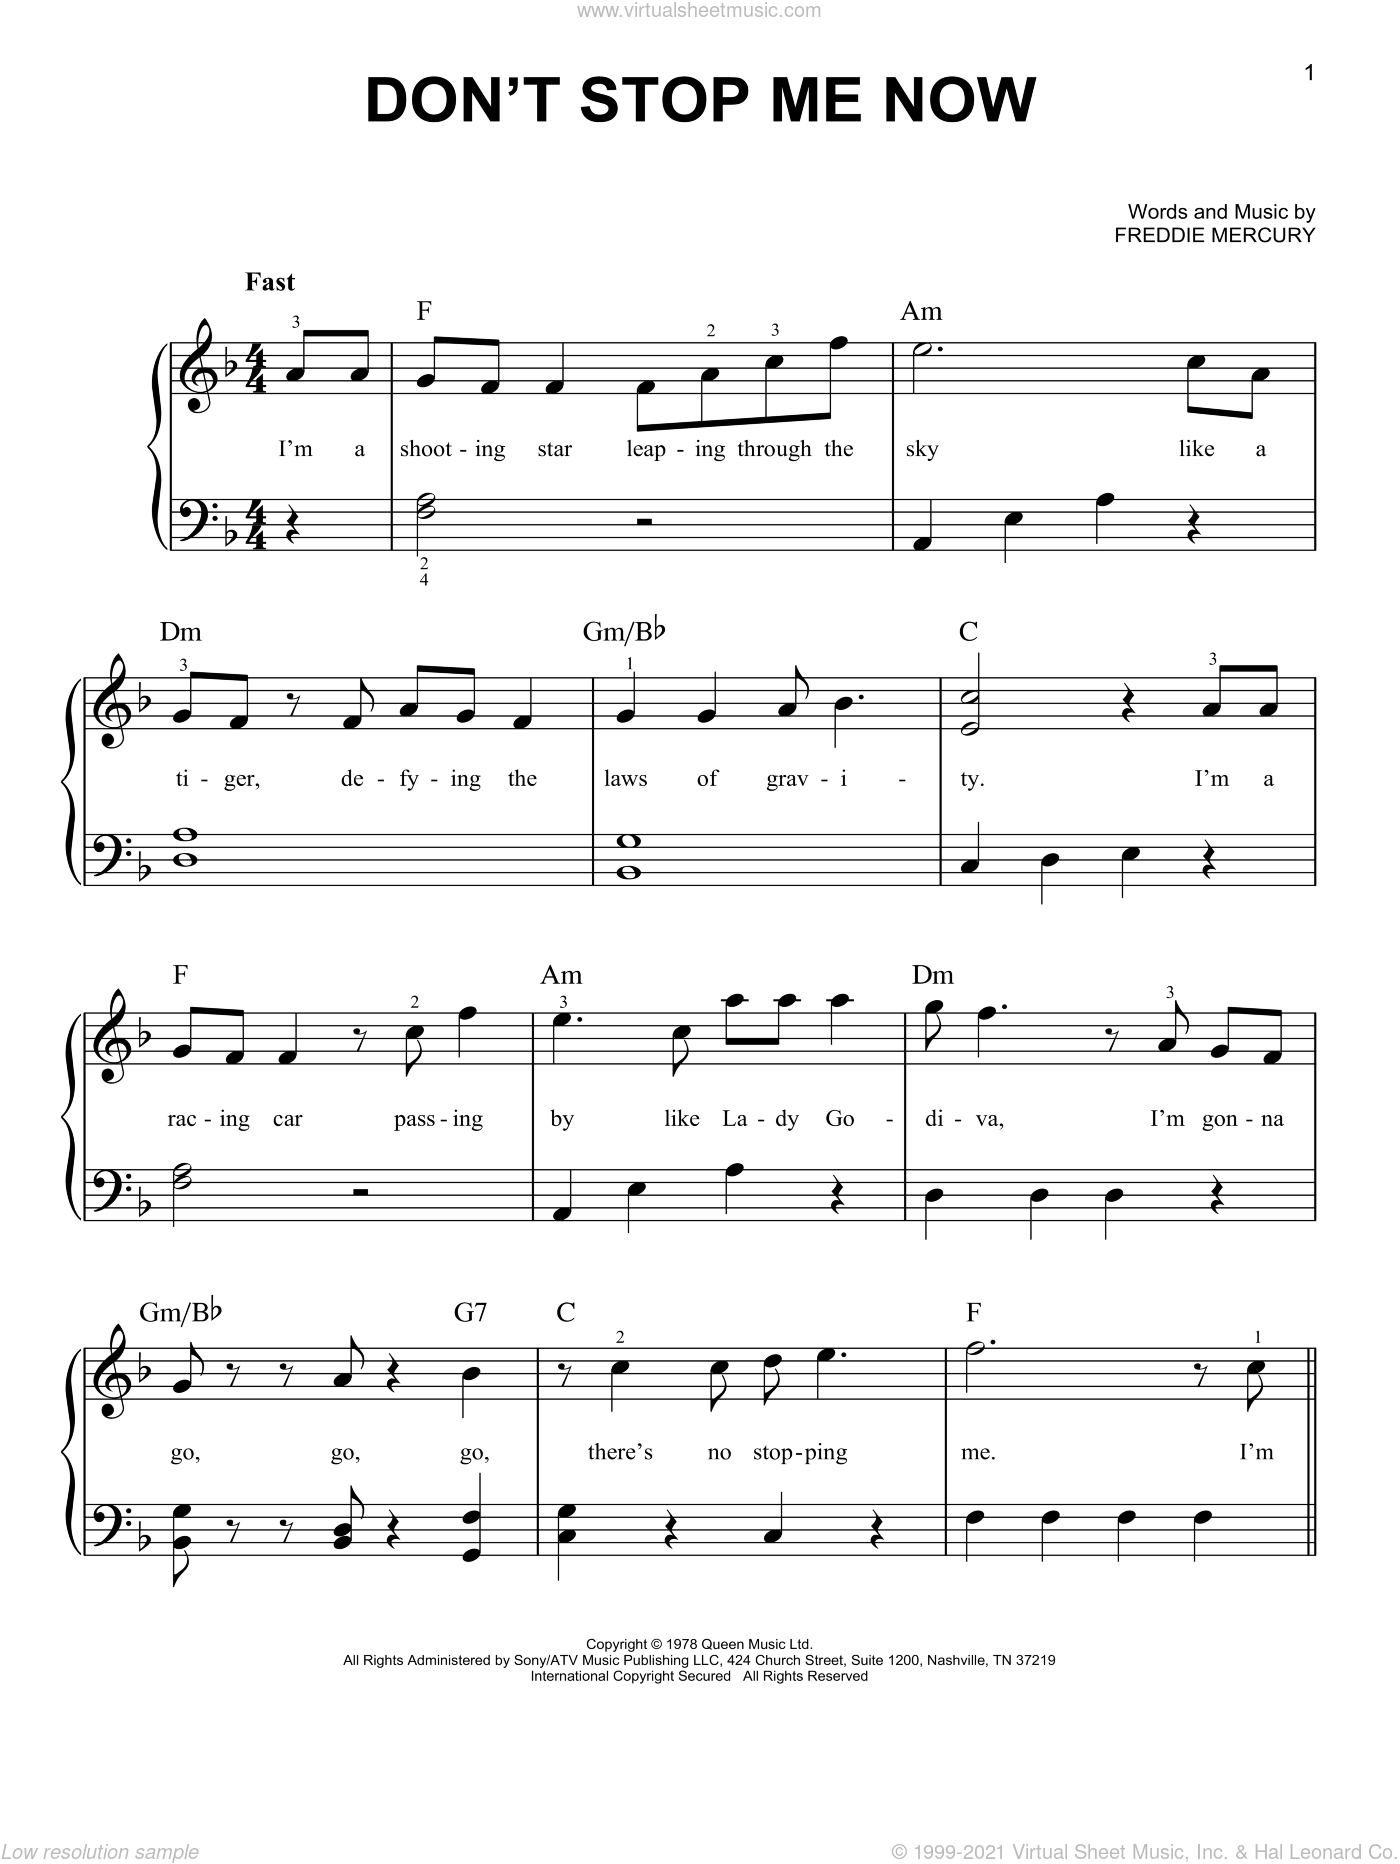 Don't Stop Me Now sheet music for piano solo by Queen and Freddie Mercury, easy skill level